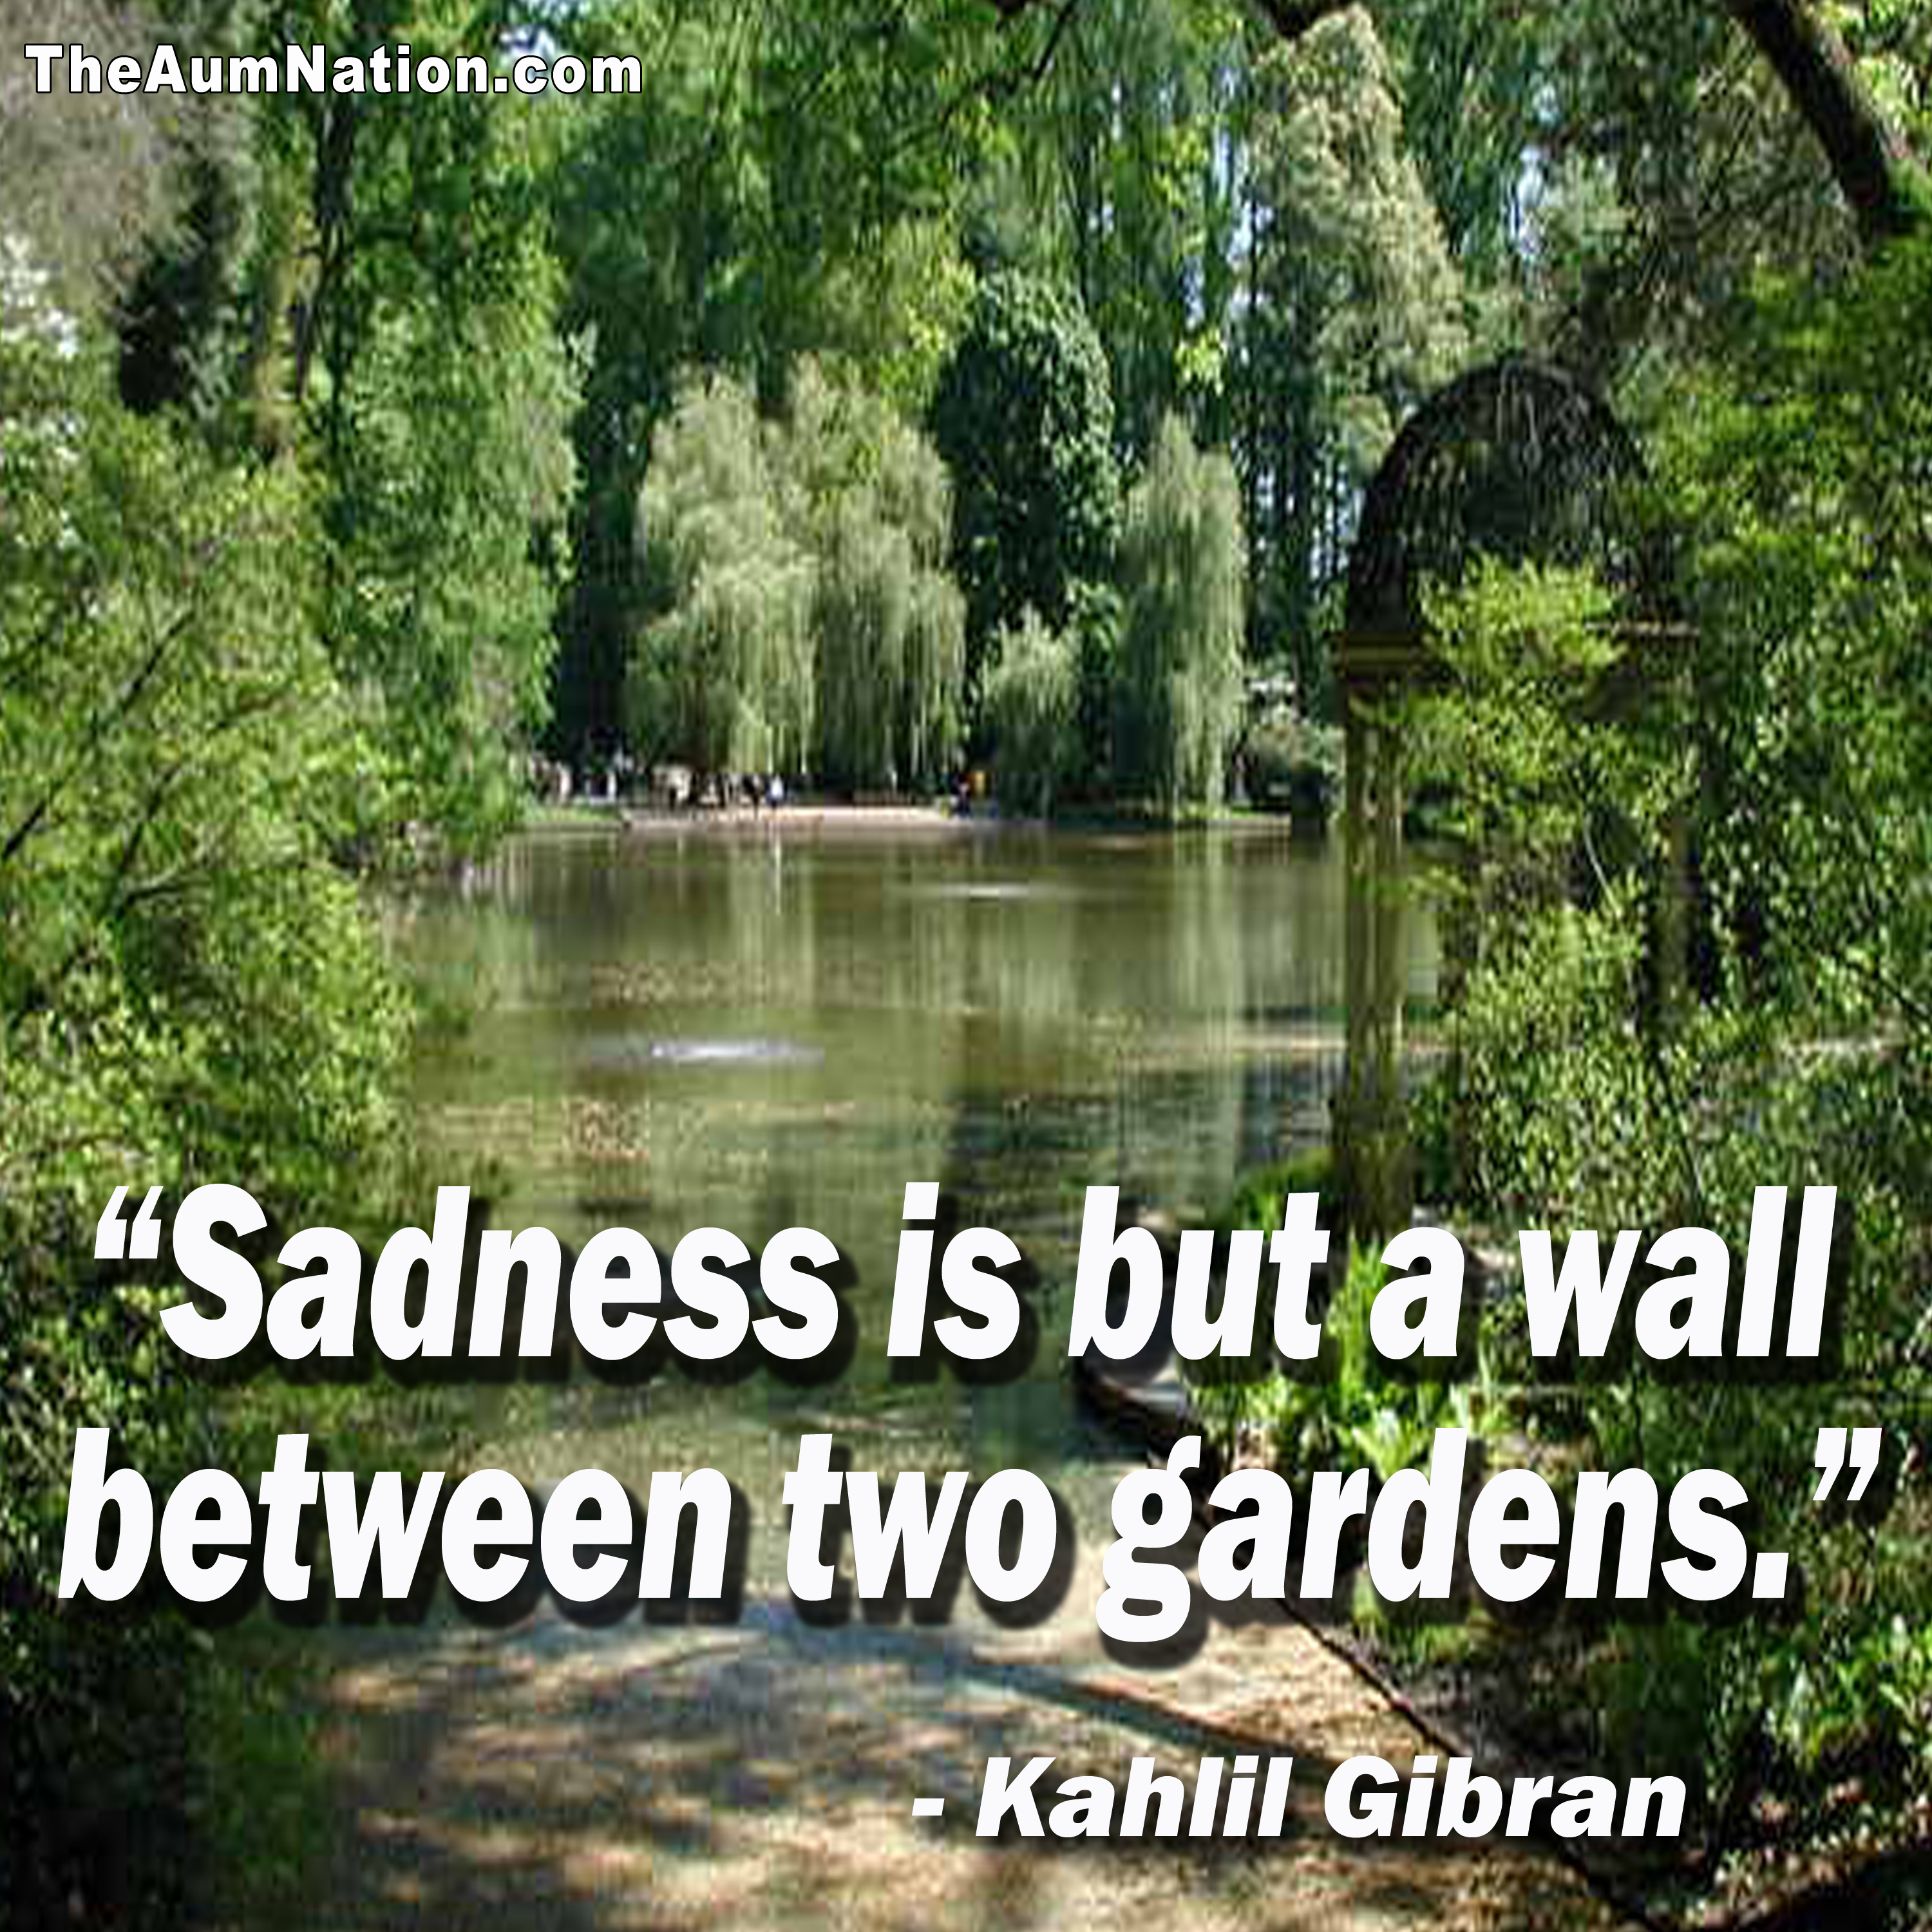 """Sadness is but a wall between two gardens."" - Kahlil Gibran  Hang in there...brighter days are coming!!!"